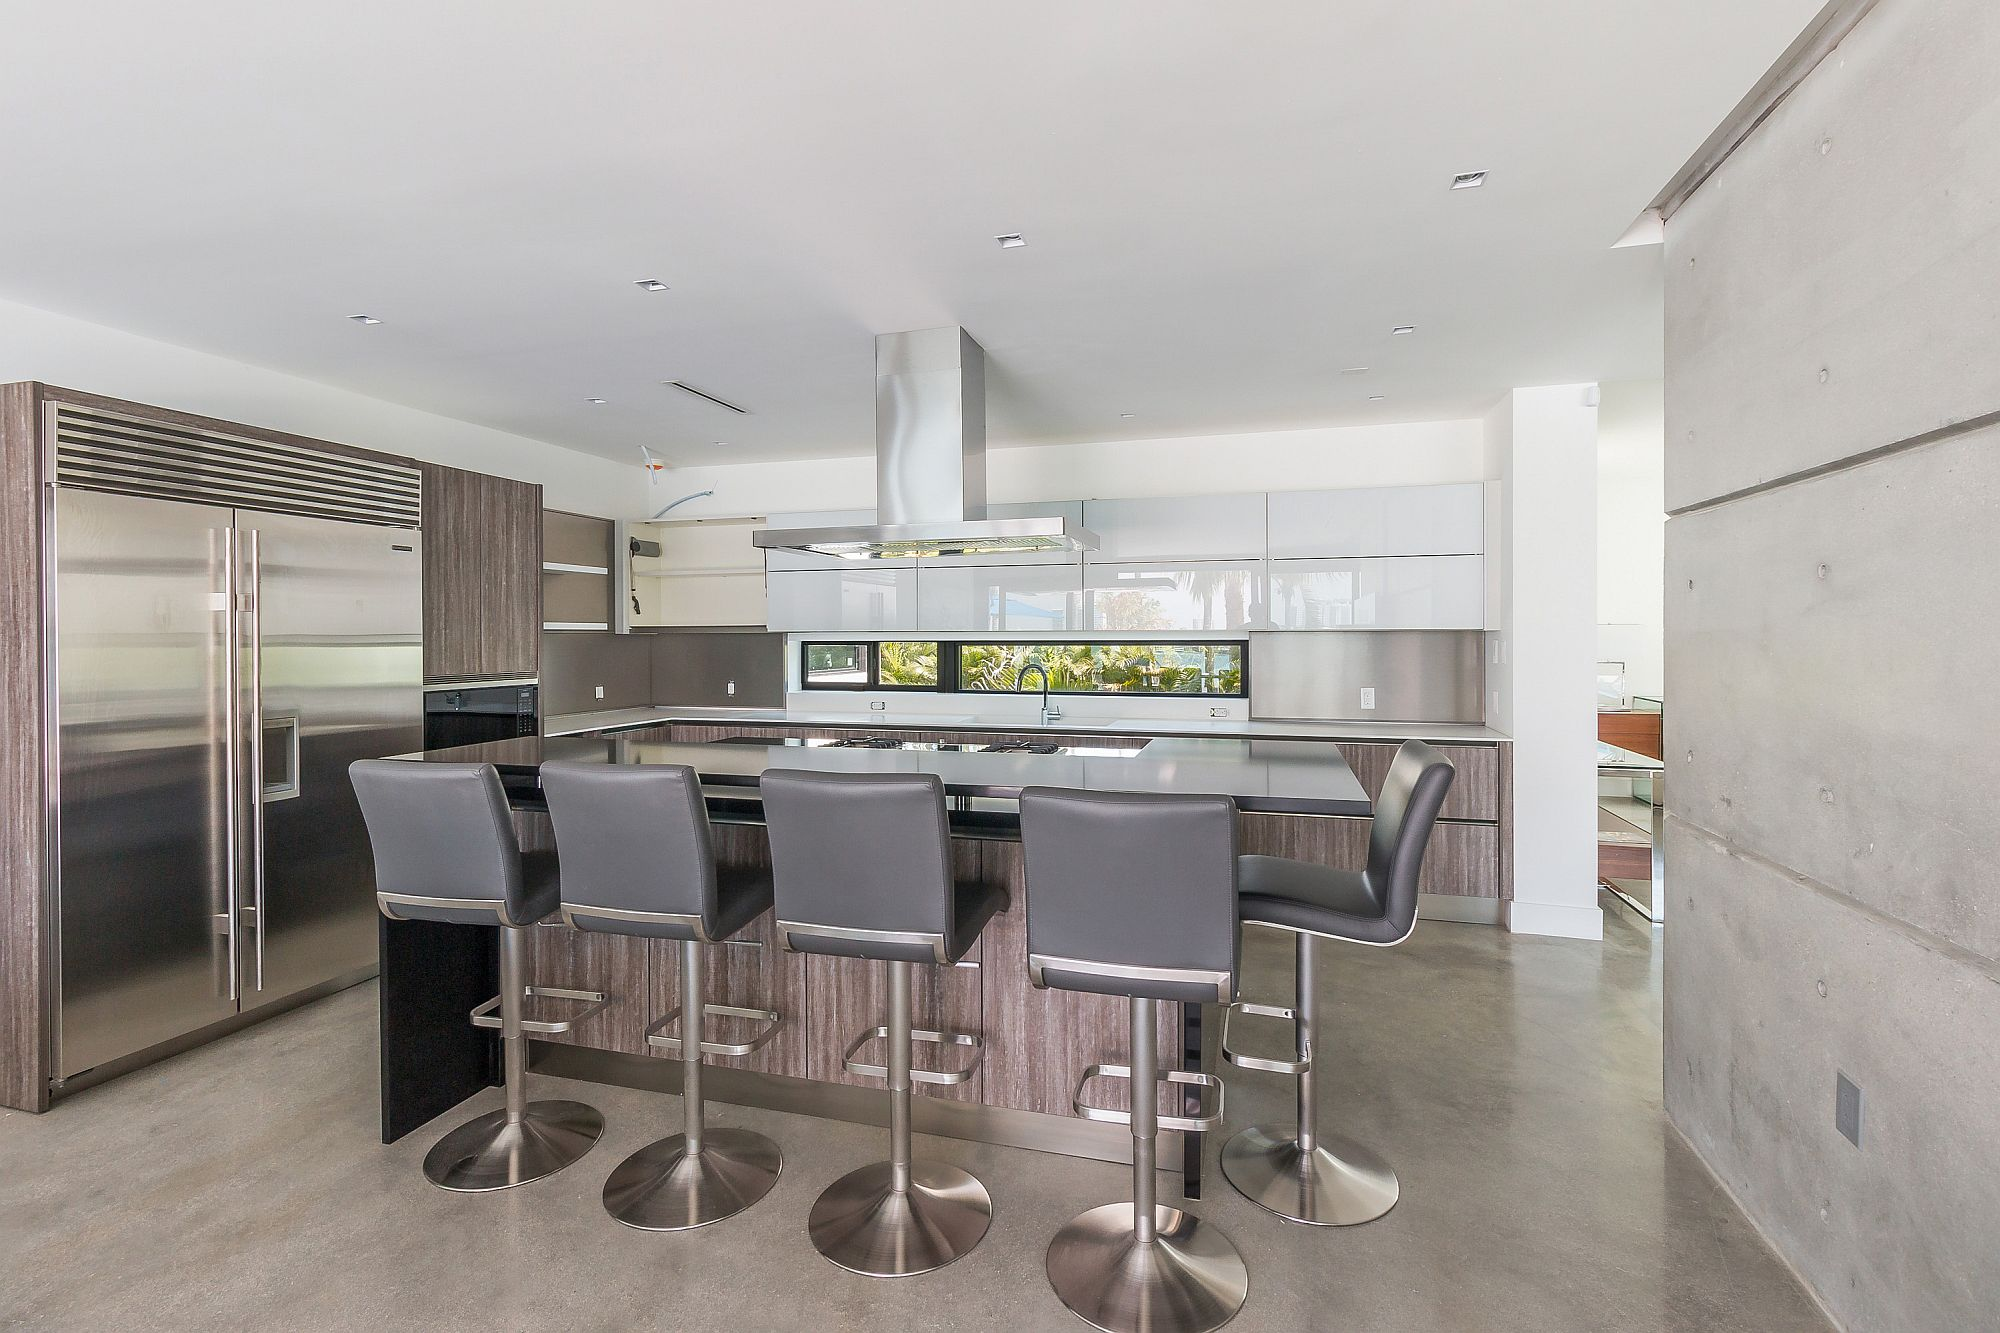 Contemporary kitchen in white and gray